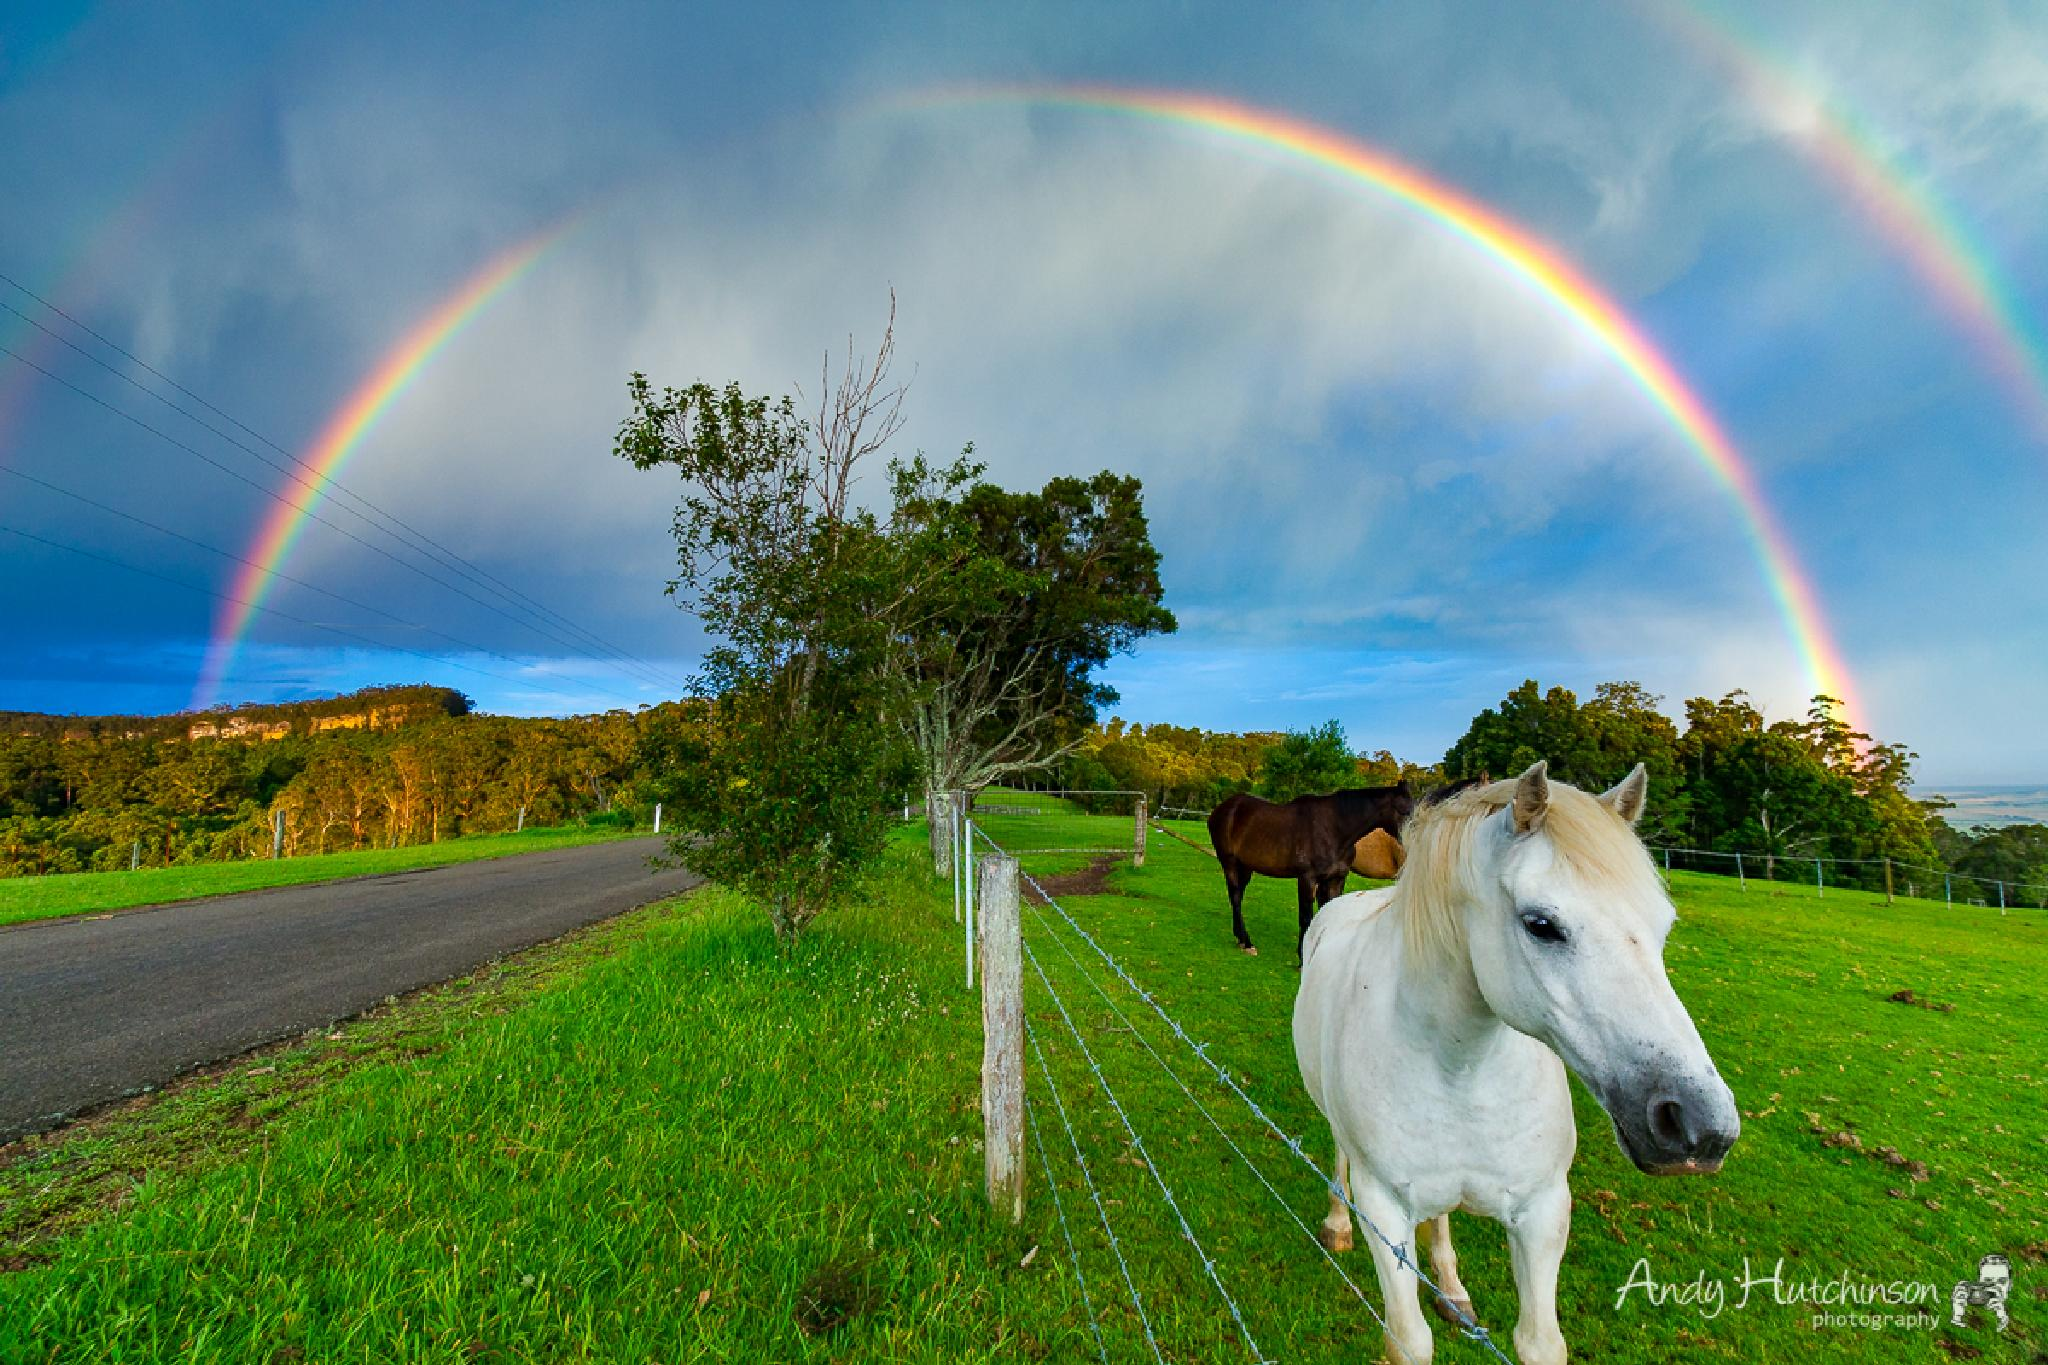 Pony and the Rainbow by Andy Hutchinson